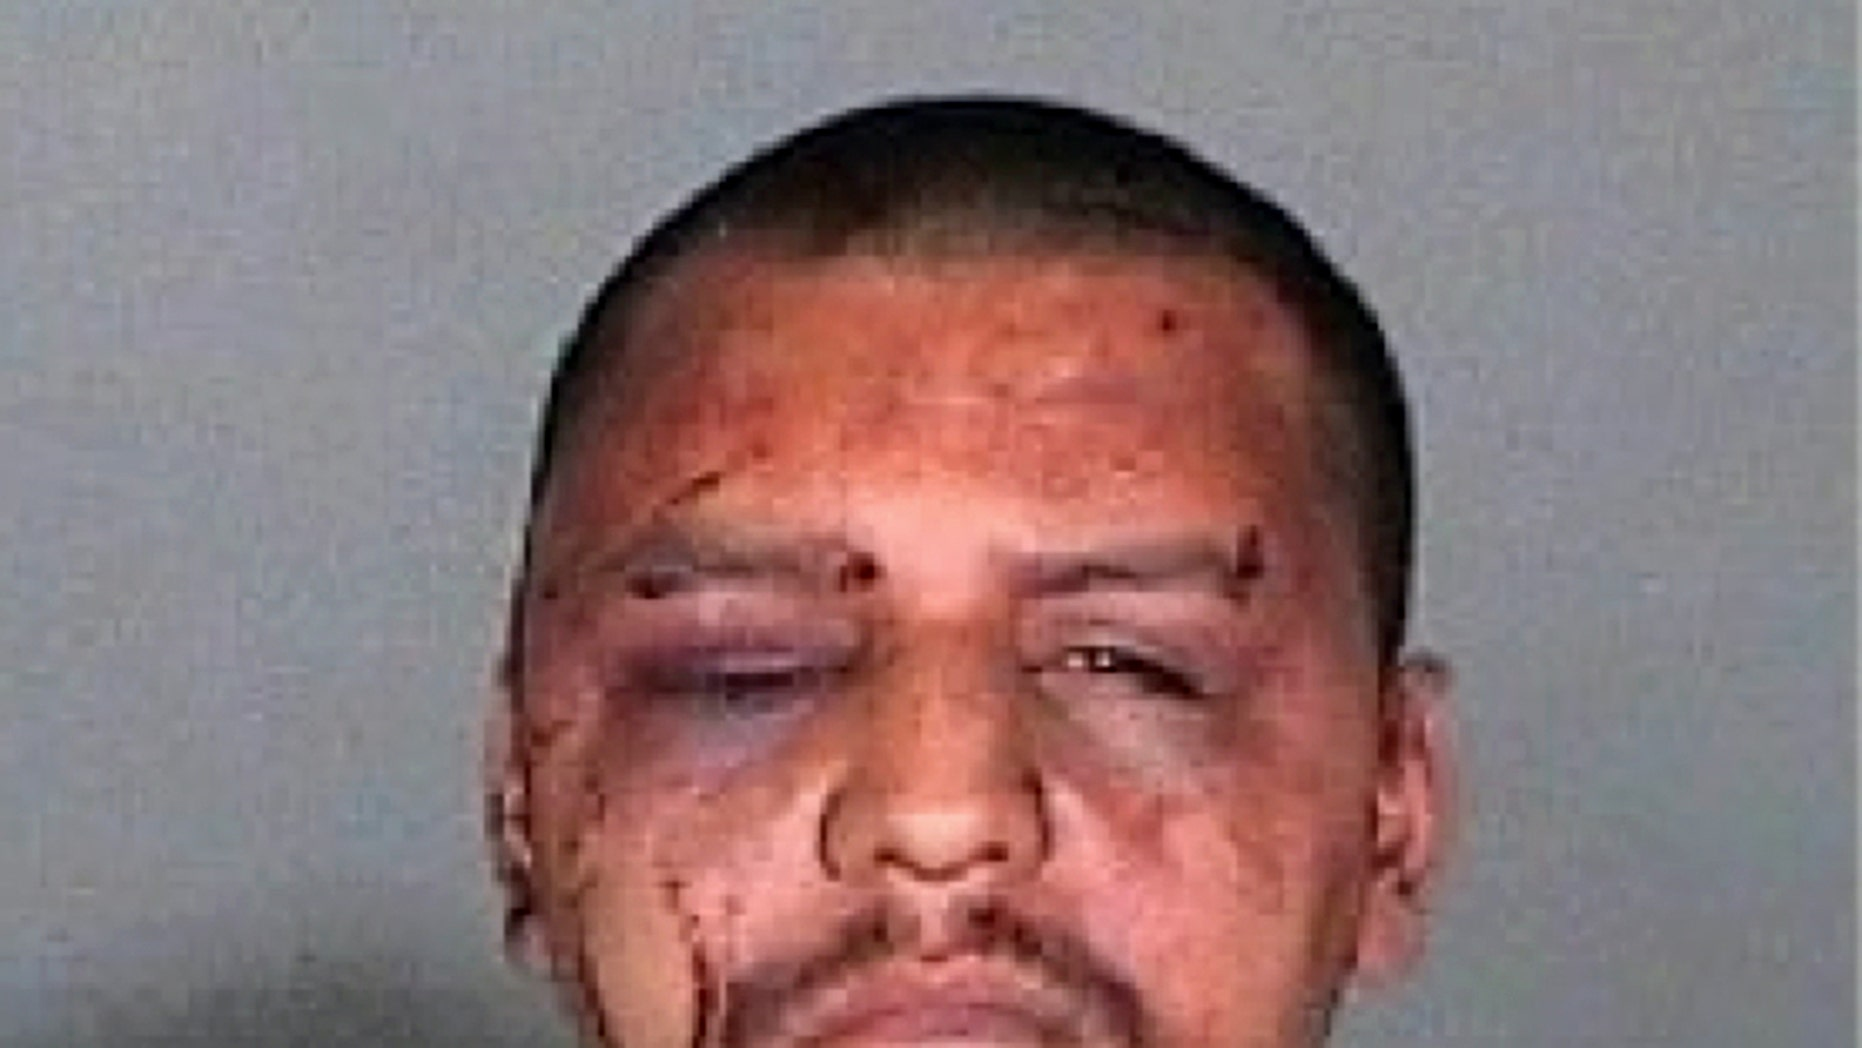 Gabriel Carrillo in Los Angeles, in an evidence file photo provided by the U.S. Attorney's Office.